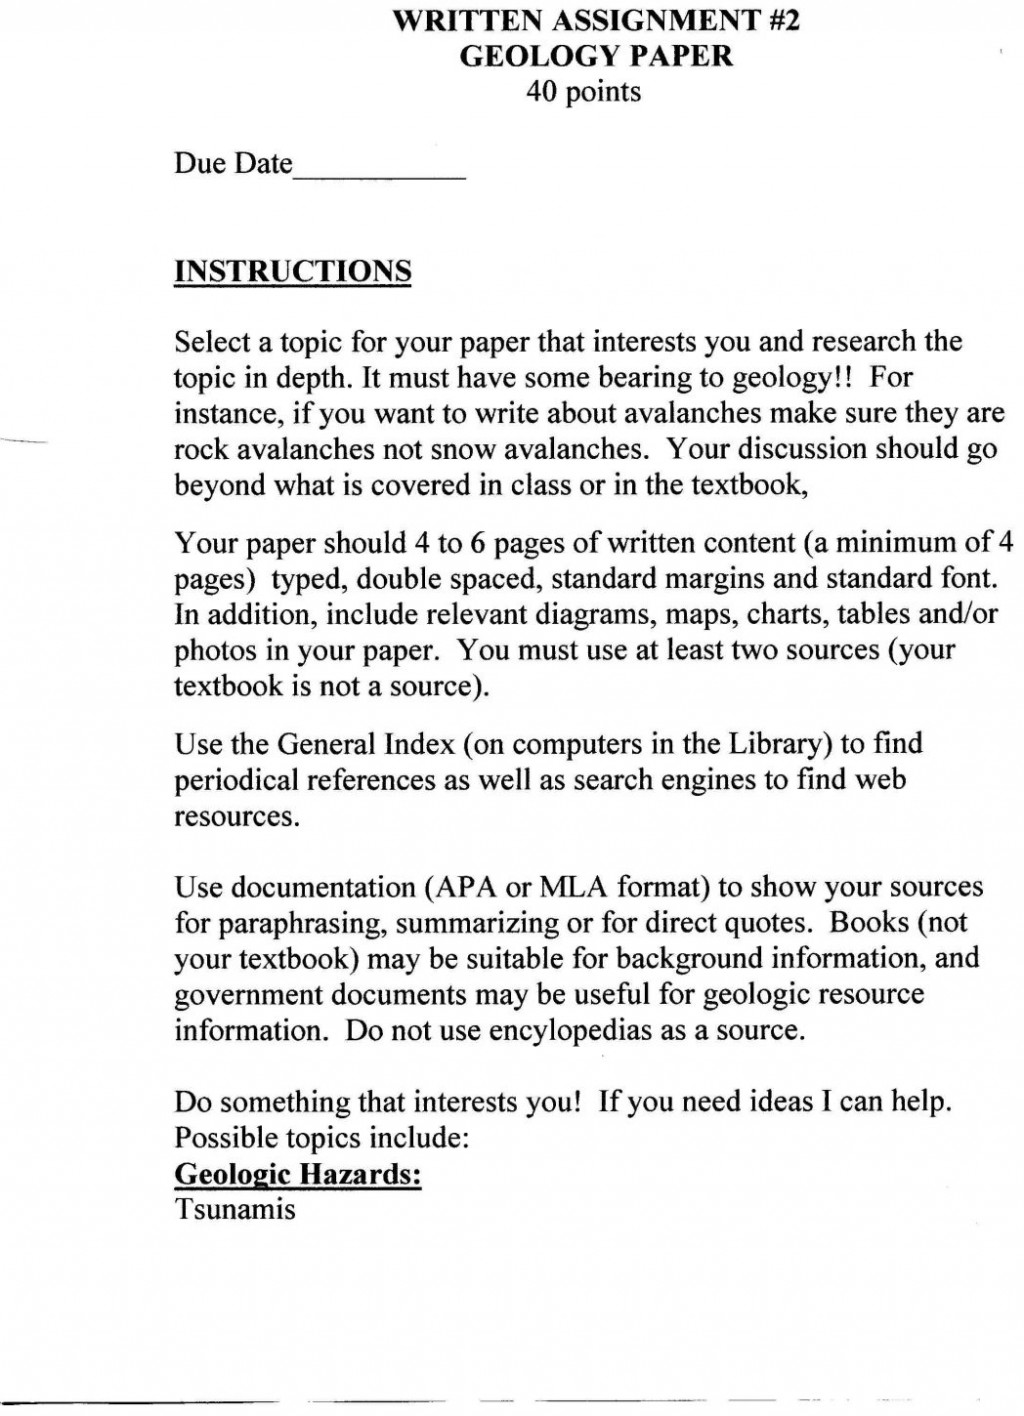 014 Crime And Punishment Essay Questions Topics On Religion For College Applications Short Paper Description Scholarships Lord Of The Flies Fahrenheit To Kill Wondrous Outline Pdf Ielts Large